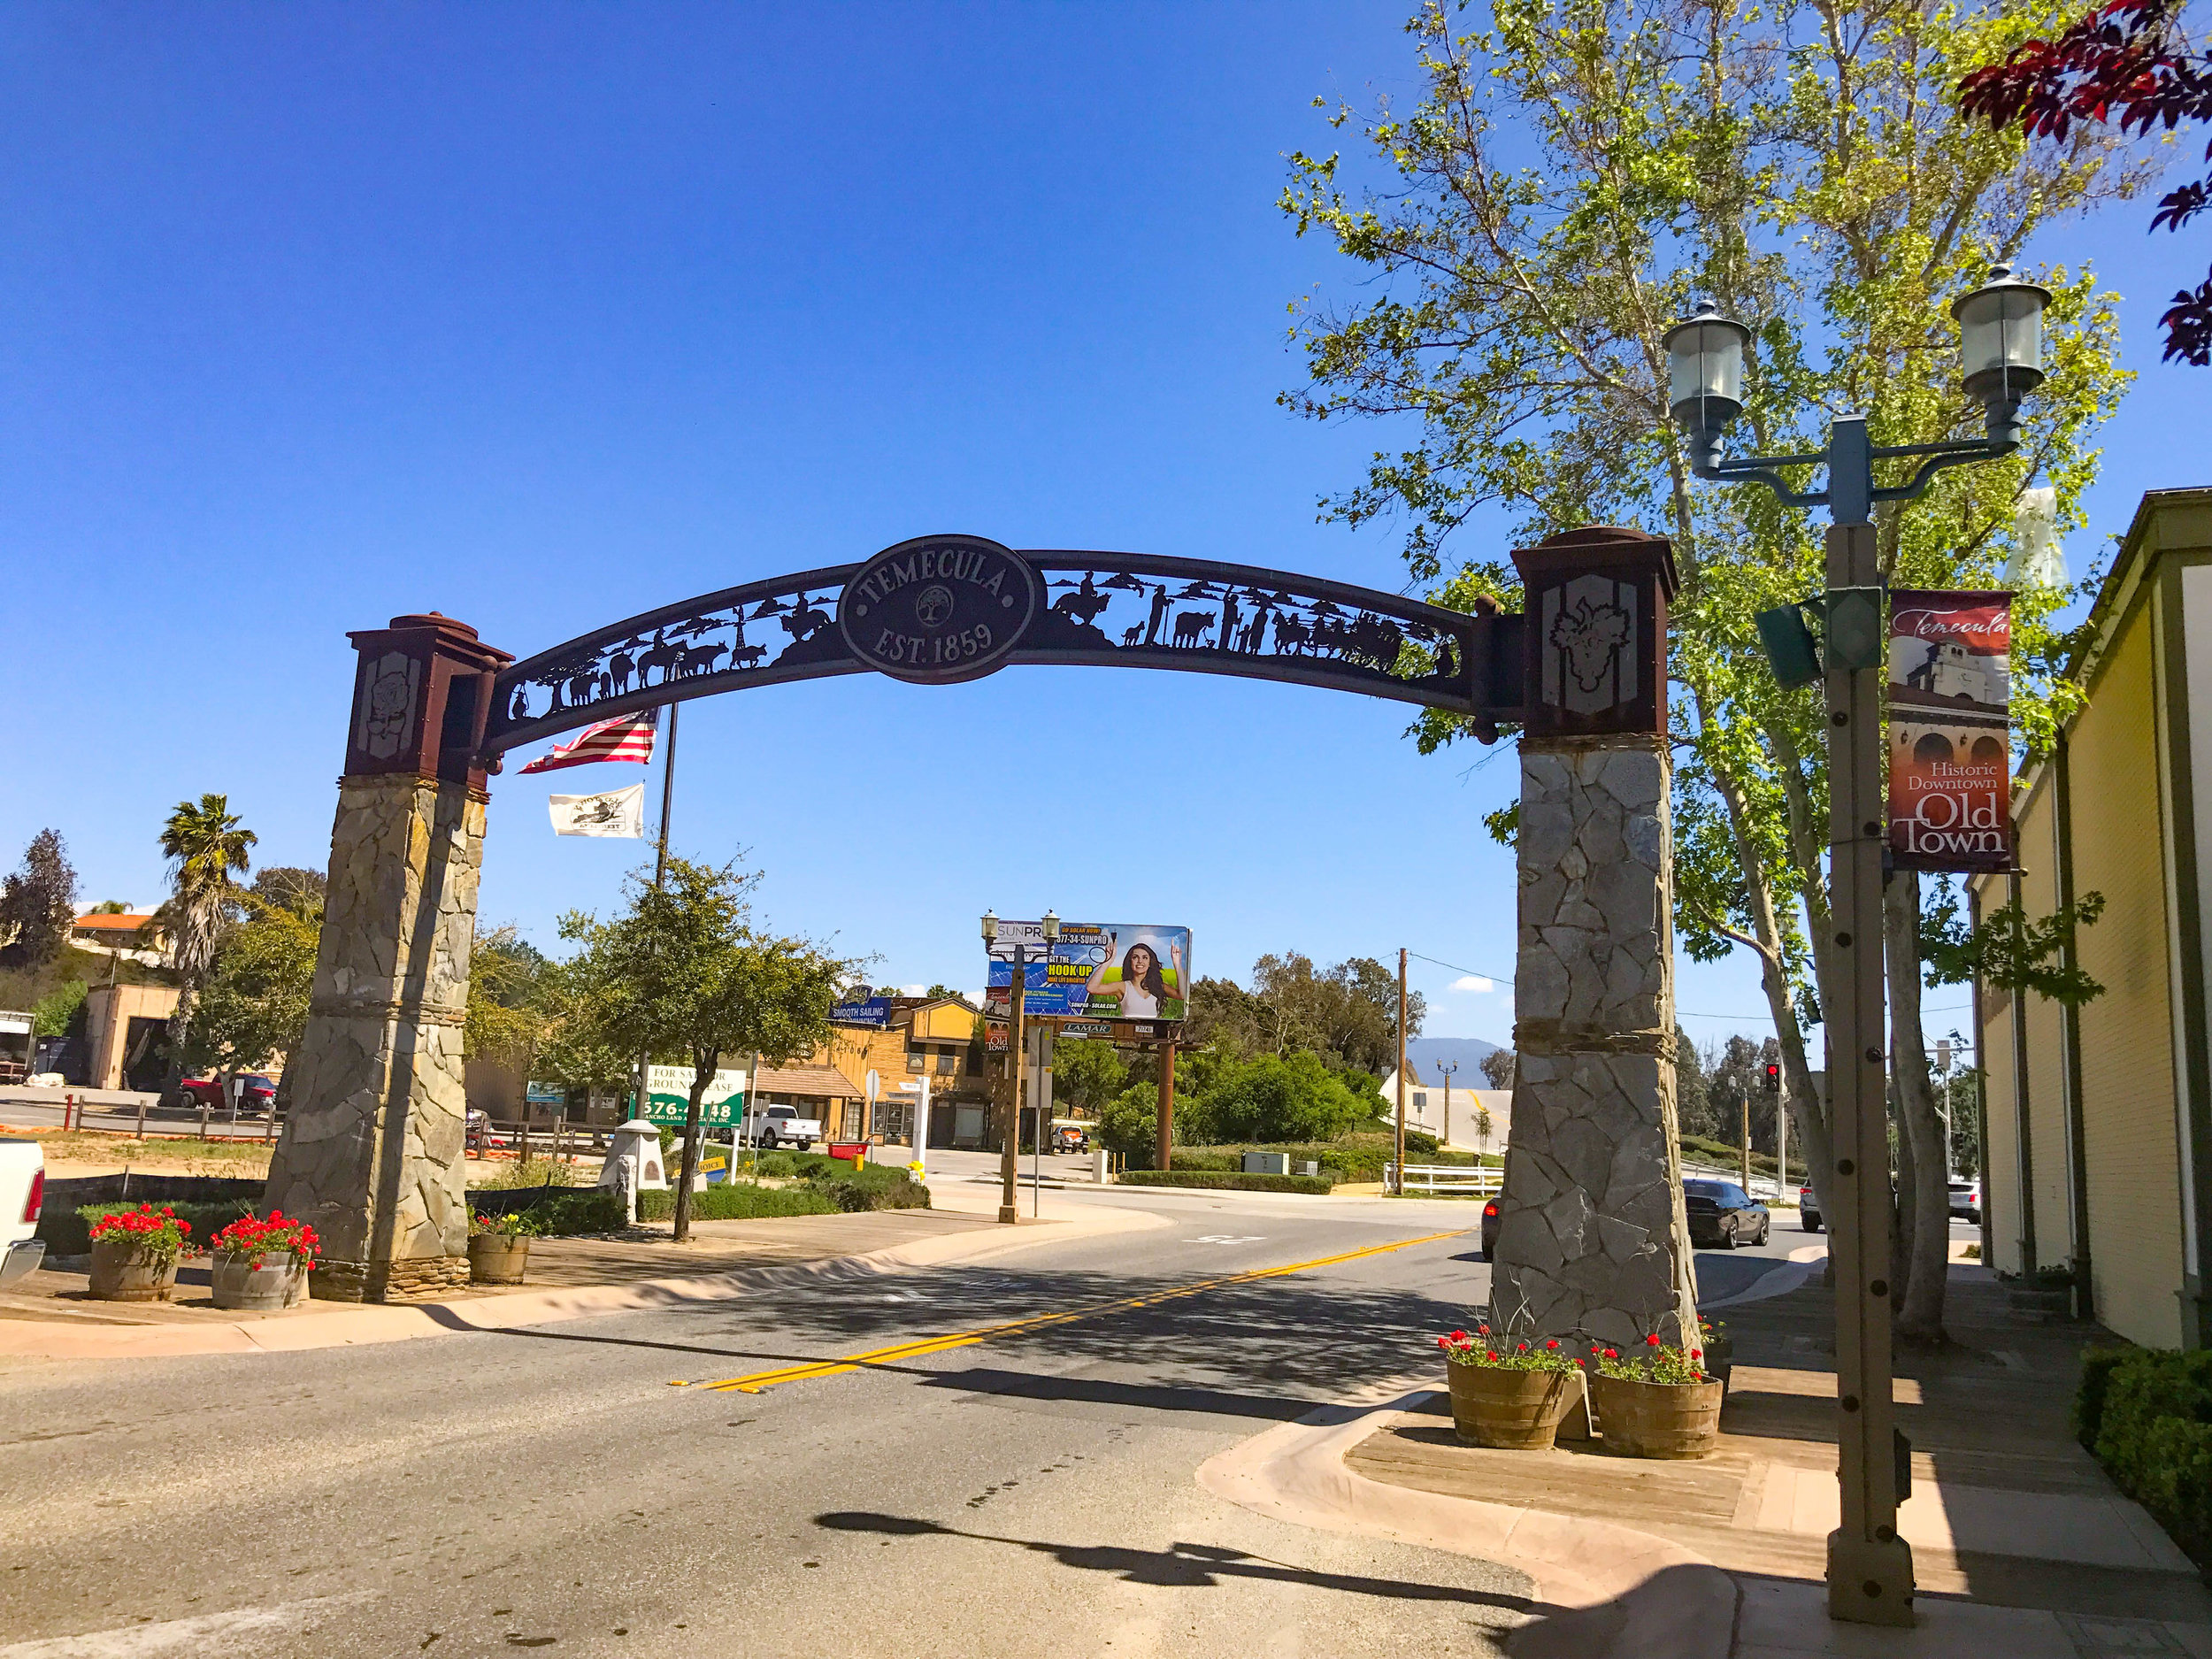 ENTRANCE TO OLD TOWN TEMECULA